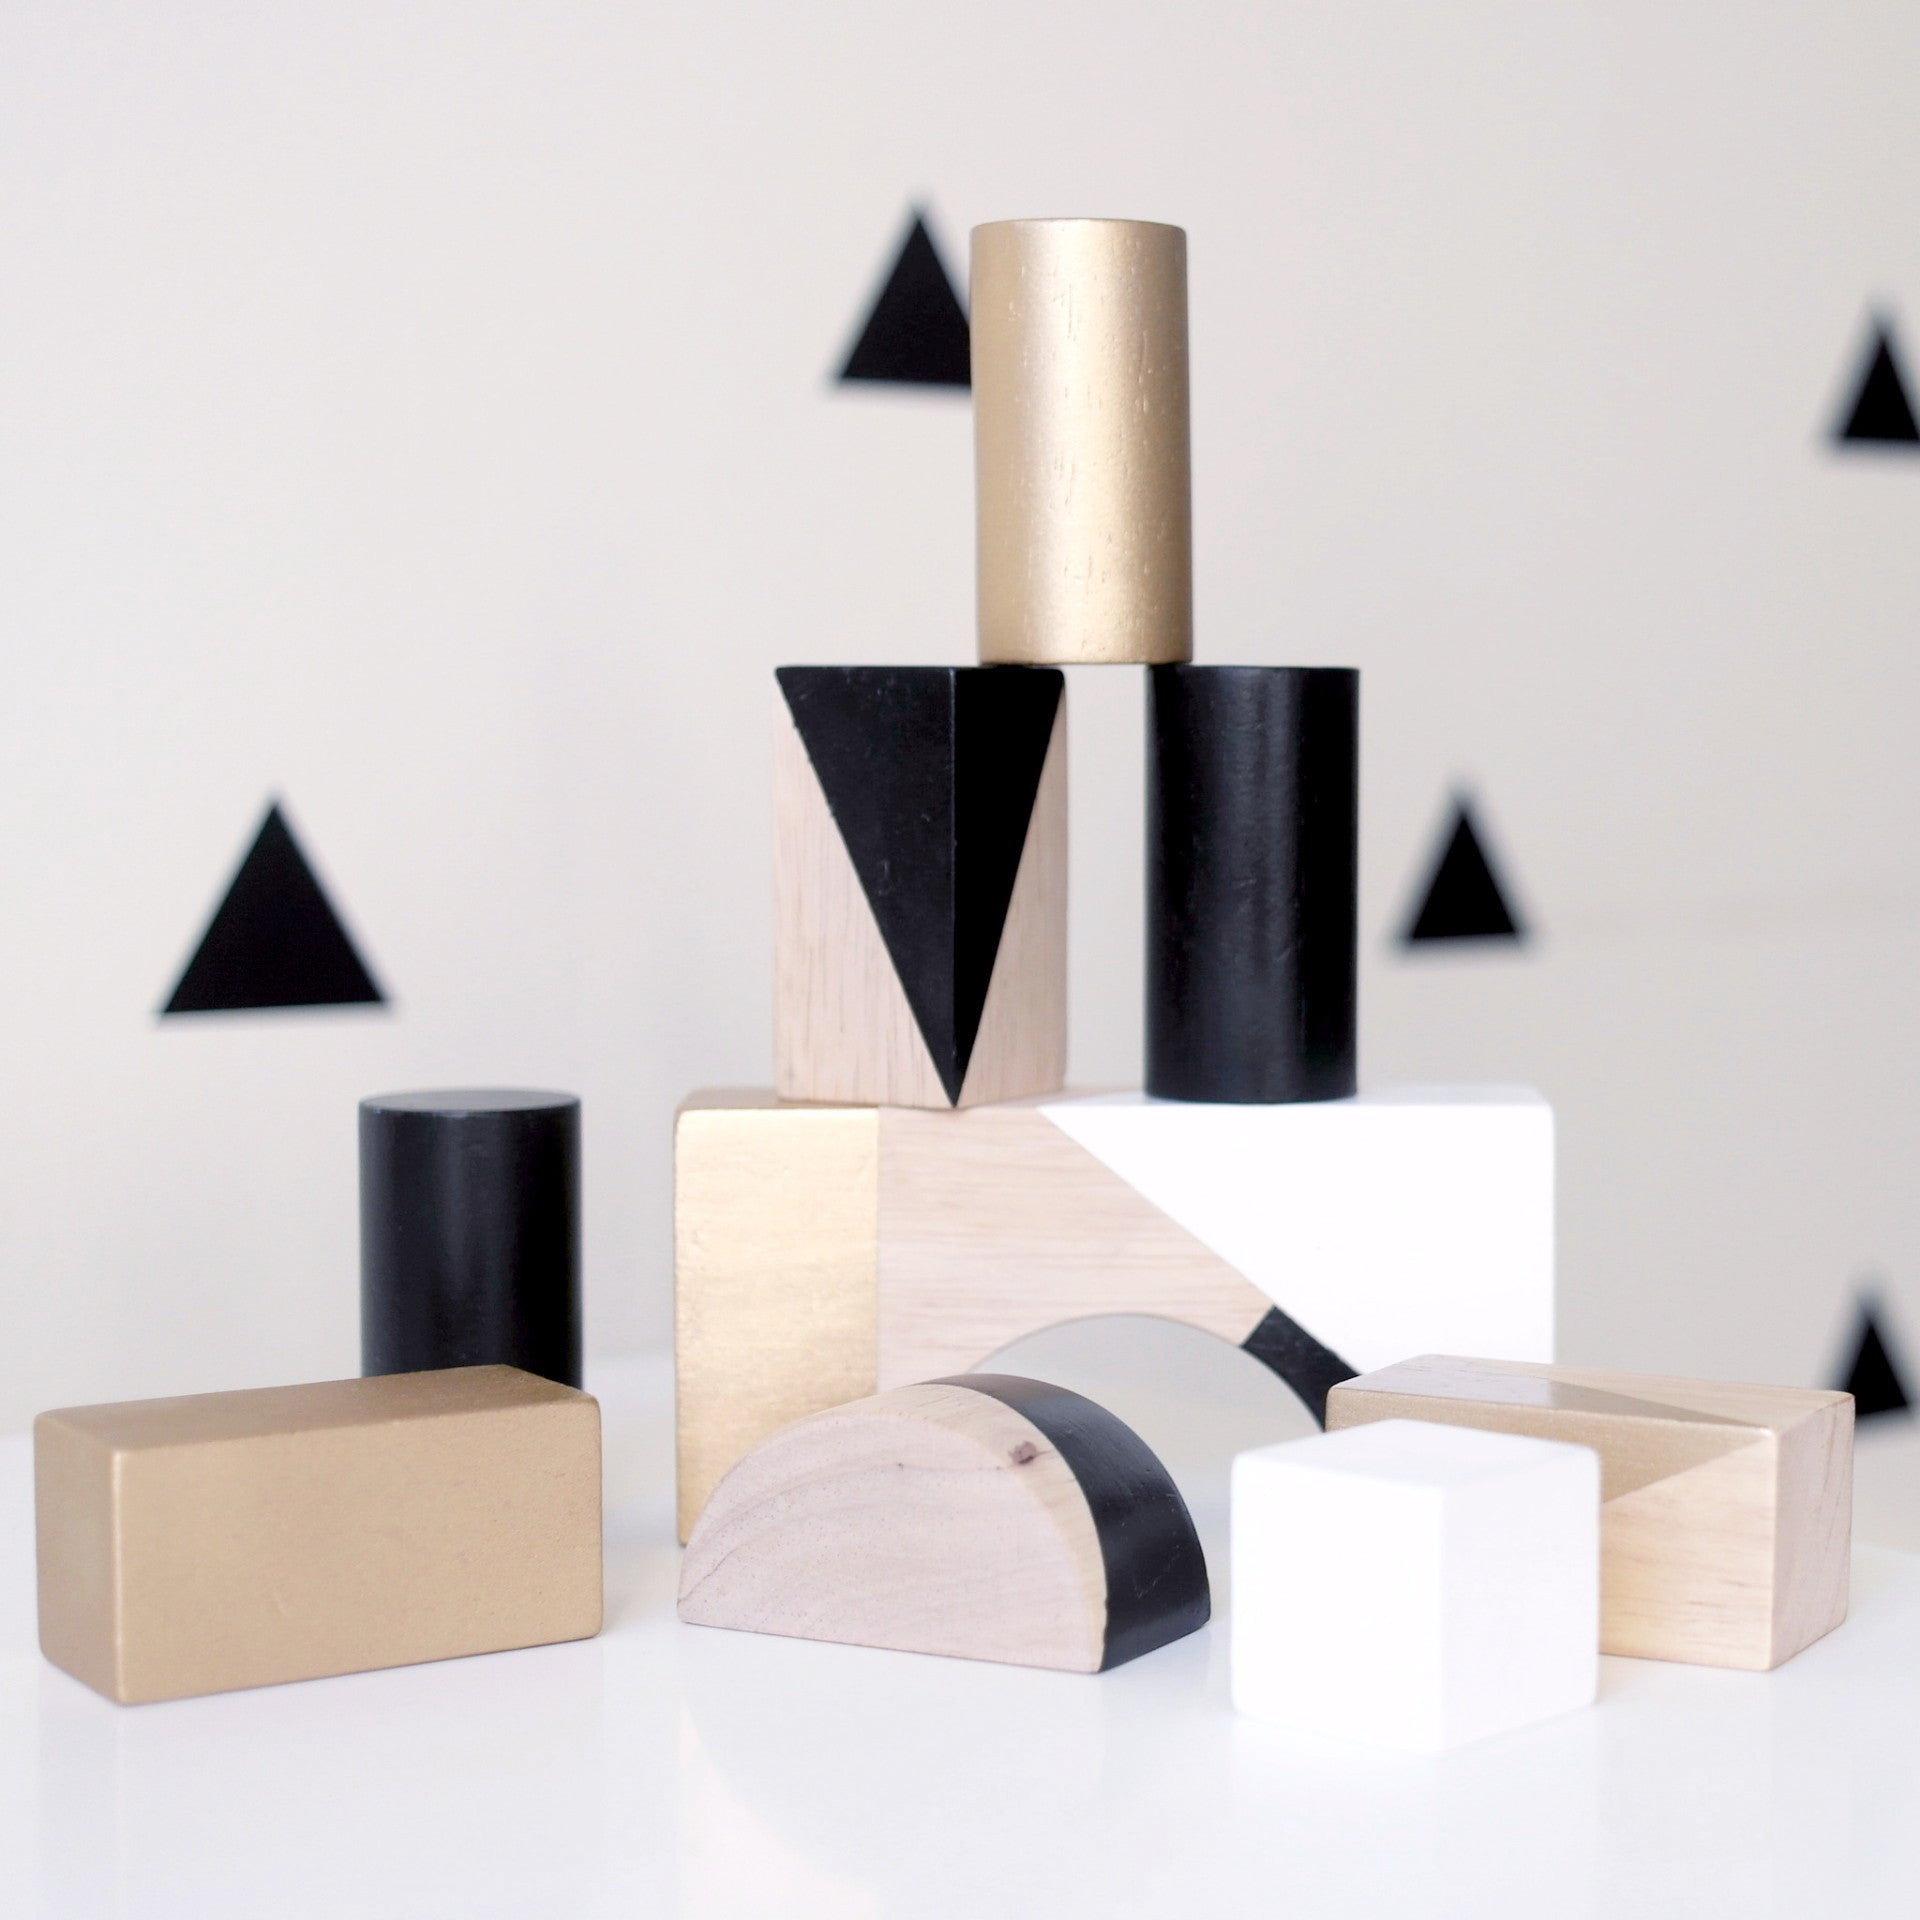 Painted wooden blocks in black, white & gold